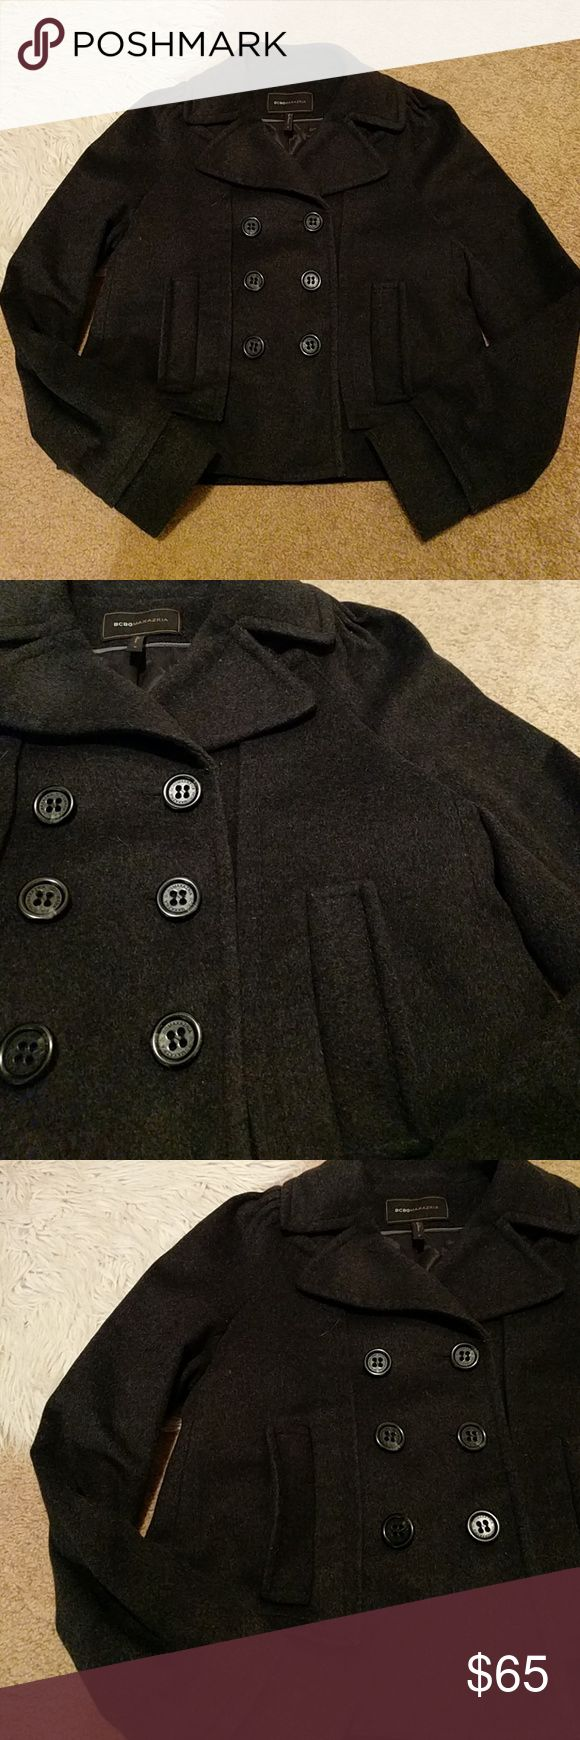 """BCBG Max Azria Dark Grey Wool Blend Coat Like new, great details throughout coat, faux double layer on cuff and bottom, double button panel, functional pockets, gathering at shoulders, 23.5"""" L, 20"""" across bust, carbon grey, lifestyle shot shows similar style only as actual coat does not have zippers BCBGMaxAzria Jackets & Coats"""